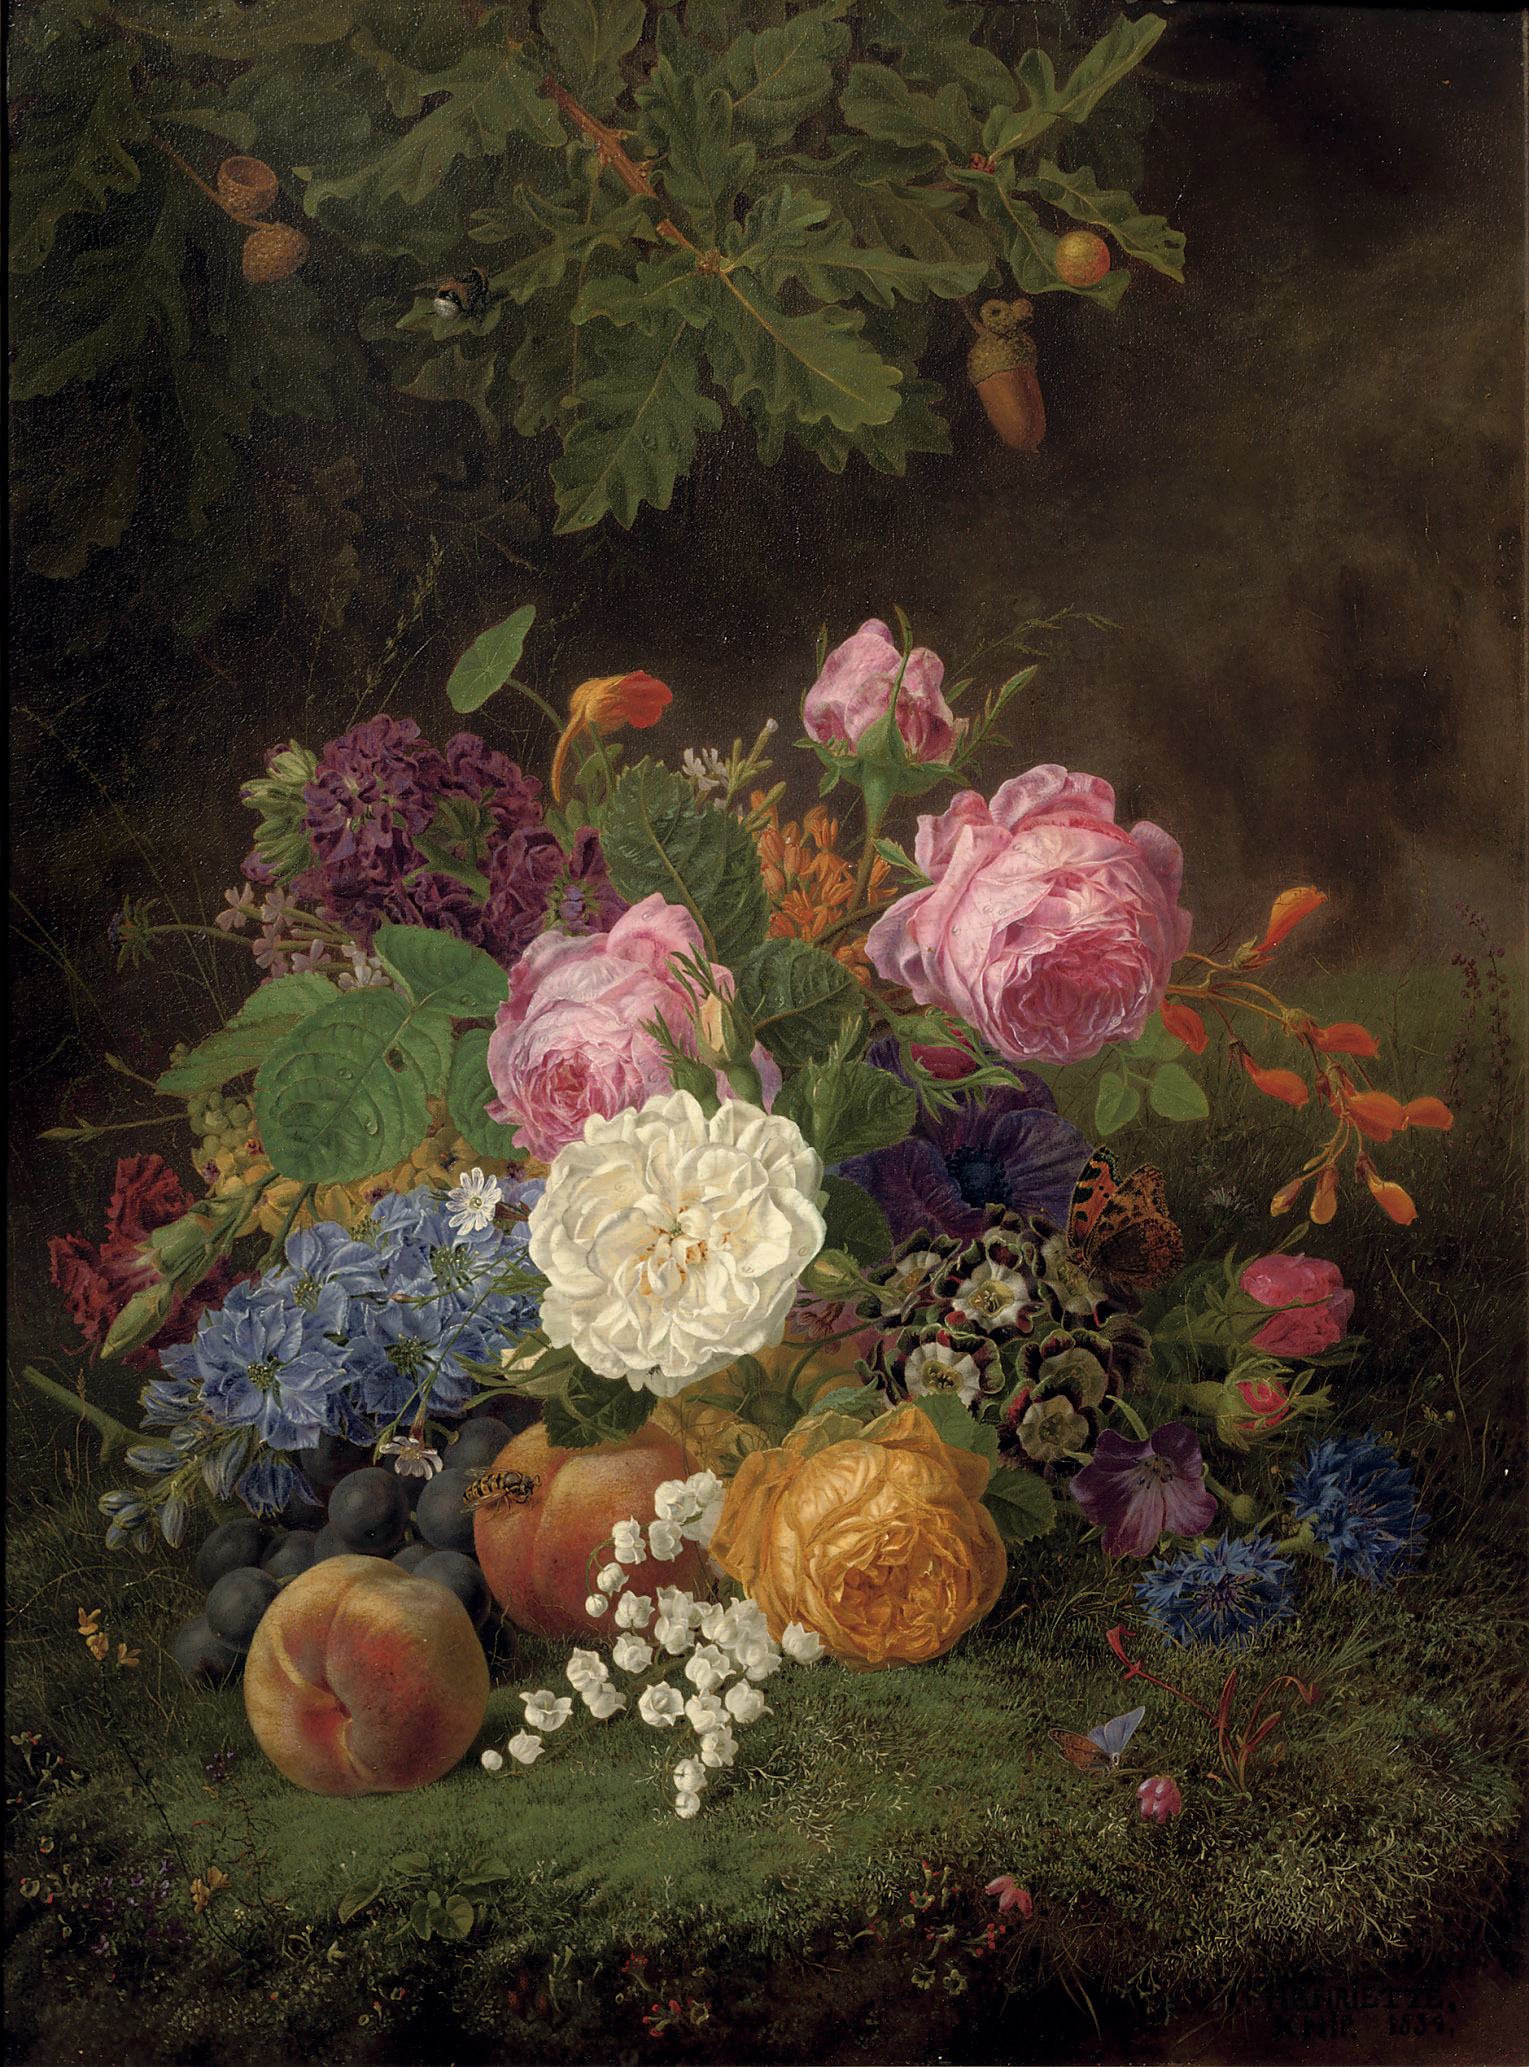 A colourful bouquet of flowers and various fruits on a forest floor